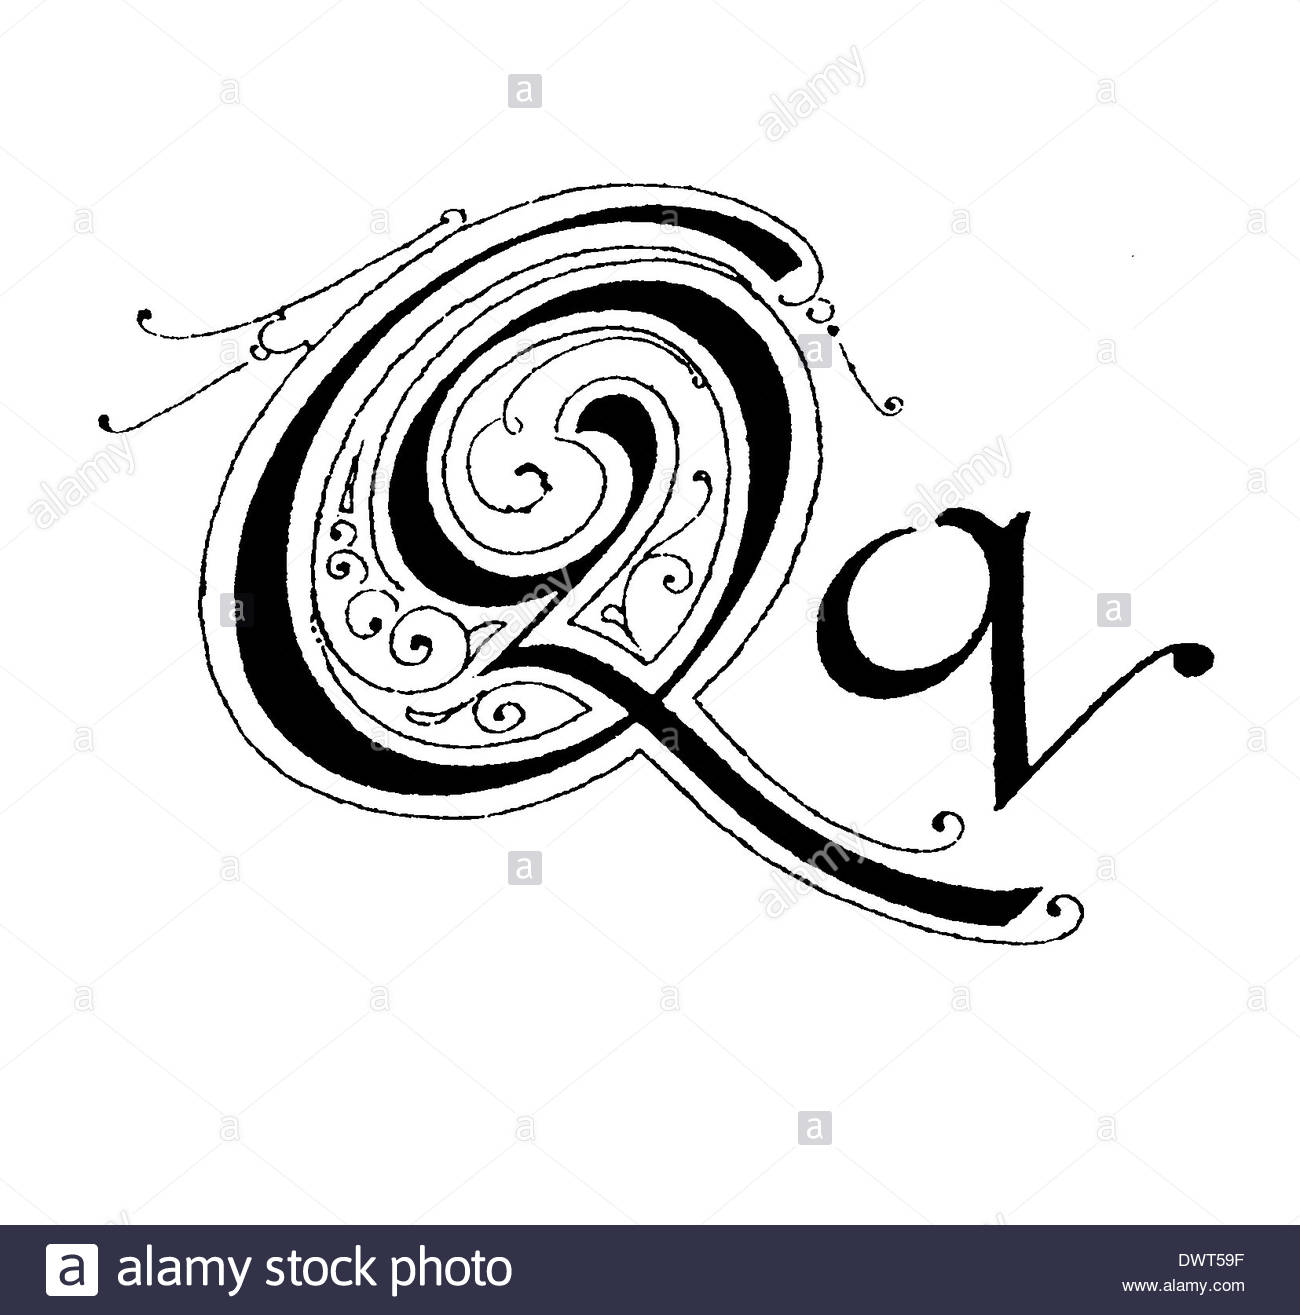 Alphabetic Character, Letter Q Stock Photo, Royalty Free Image.